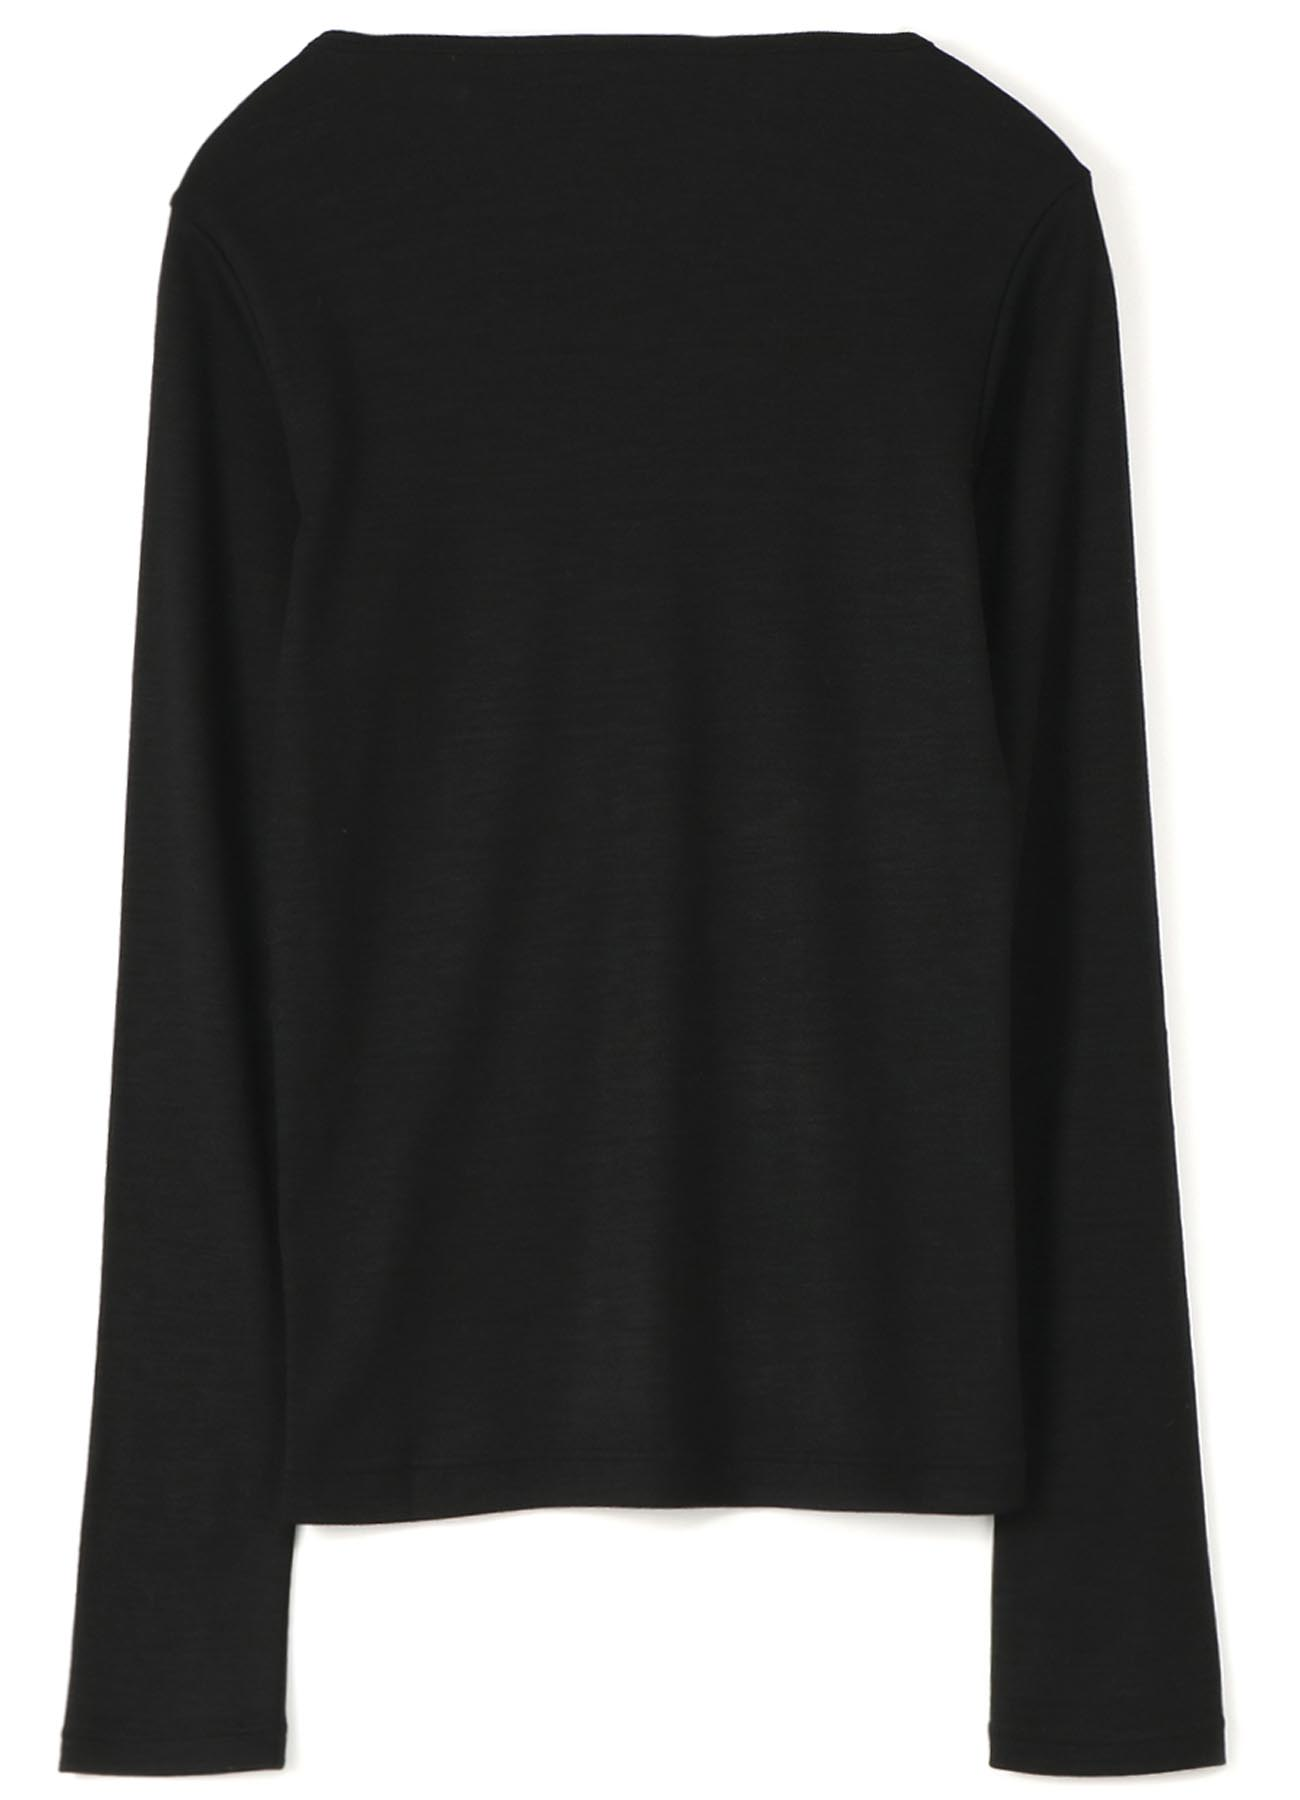 WOOL CLEAR SMOOTH ROUND NECK LONG SLEEVE T-SHIRT